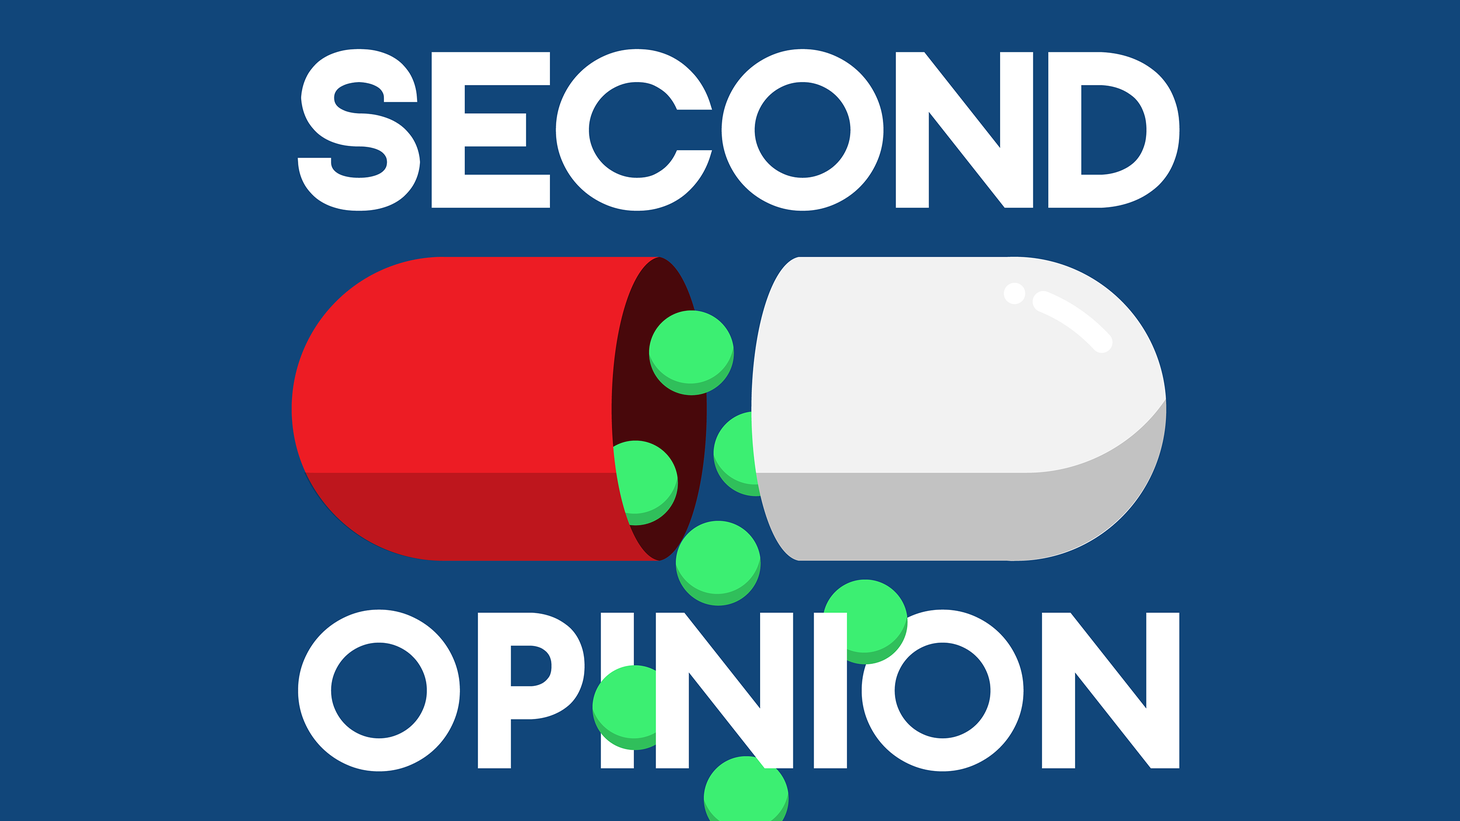 Why do people require different doses of pain medication for similar problems?